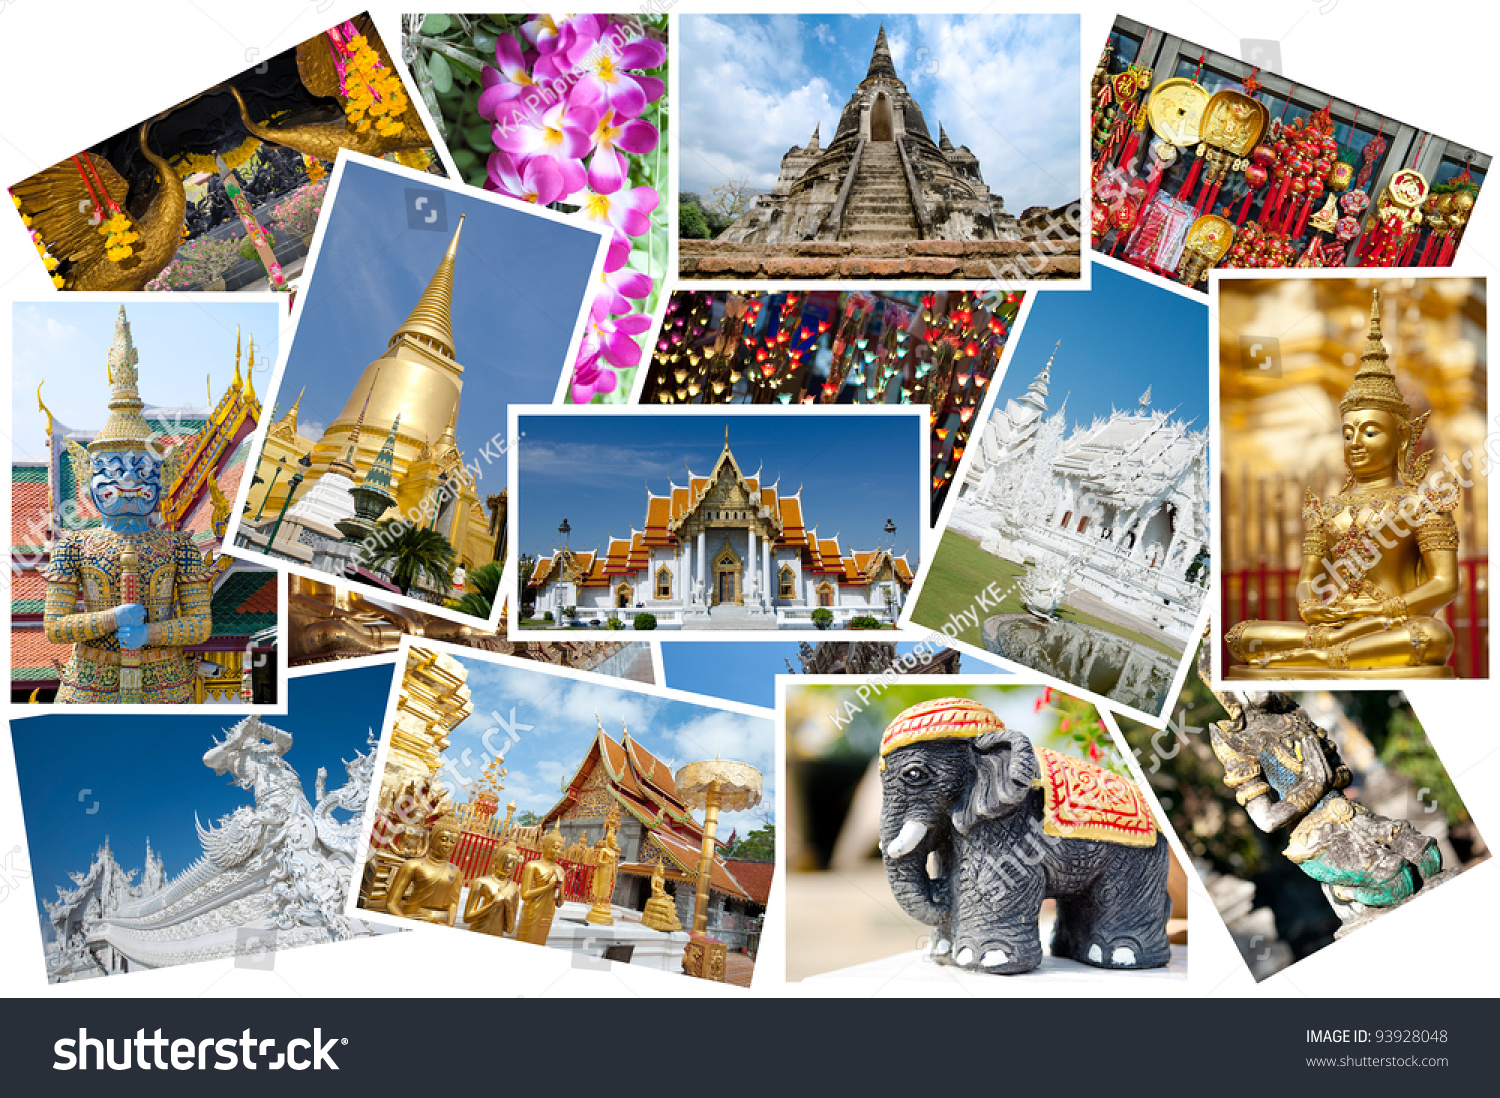 Thailand Postcard Montage Stock Photo Royalty Free 93928048